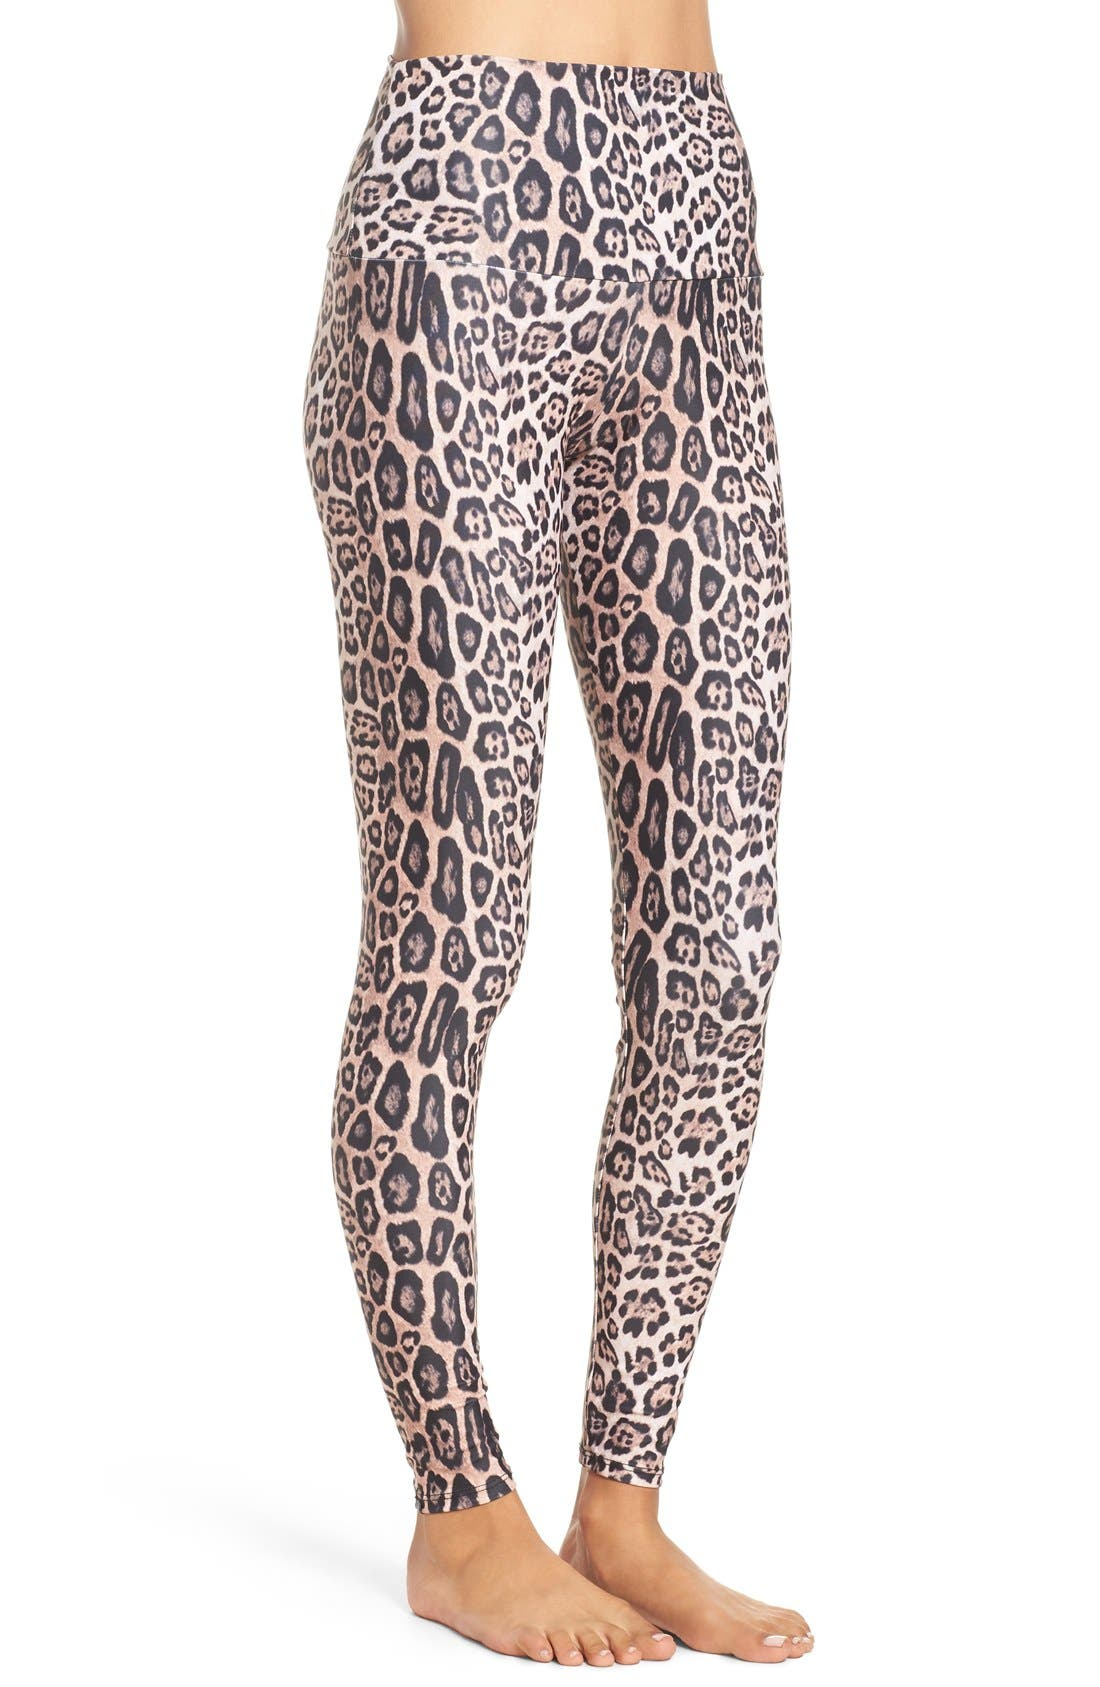 High Waist Leggings,                             Alternate thumbnail 8, color,                             Leopard